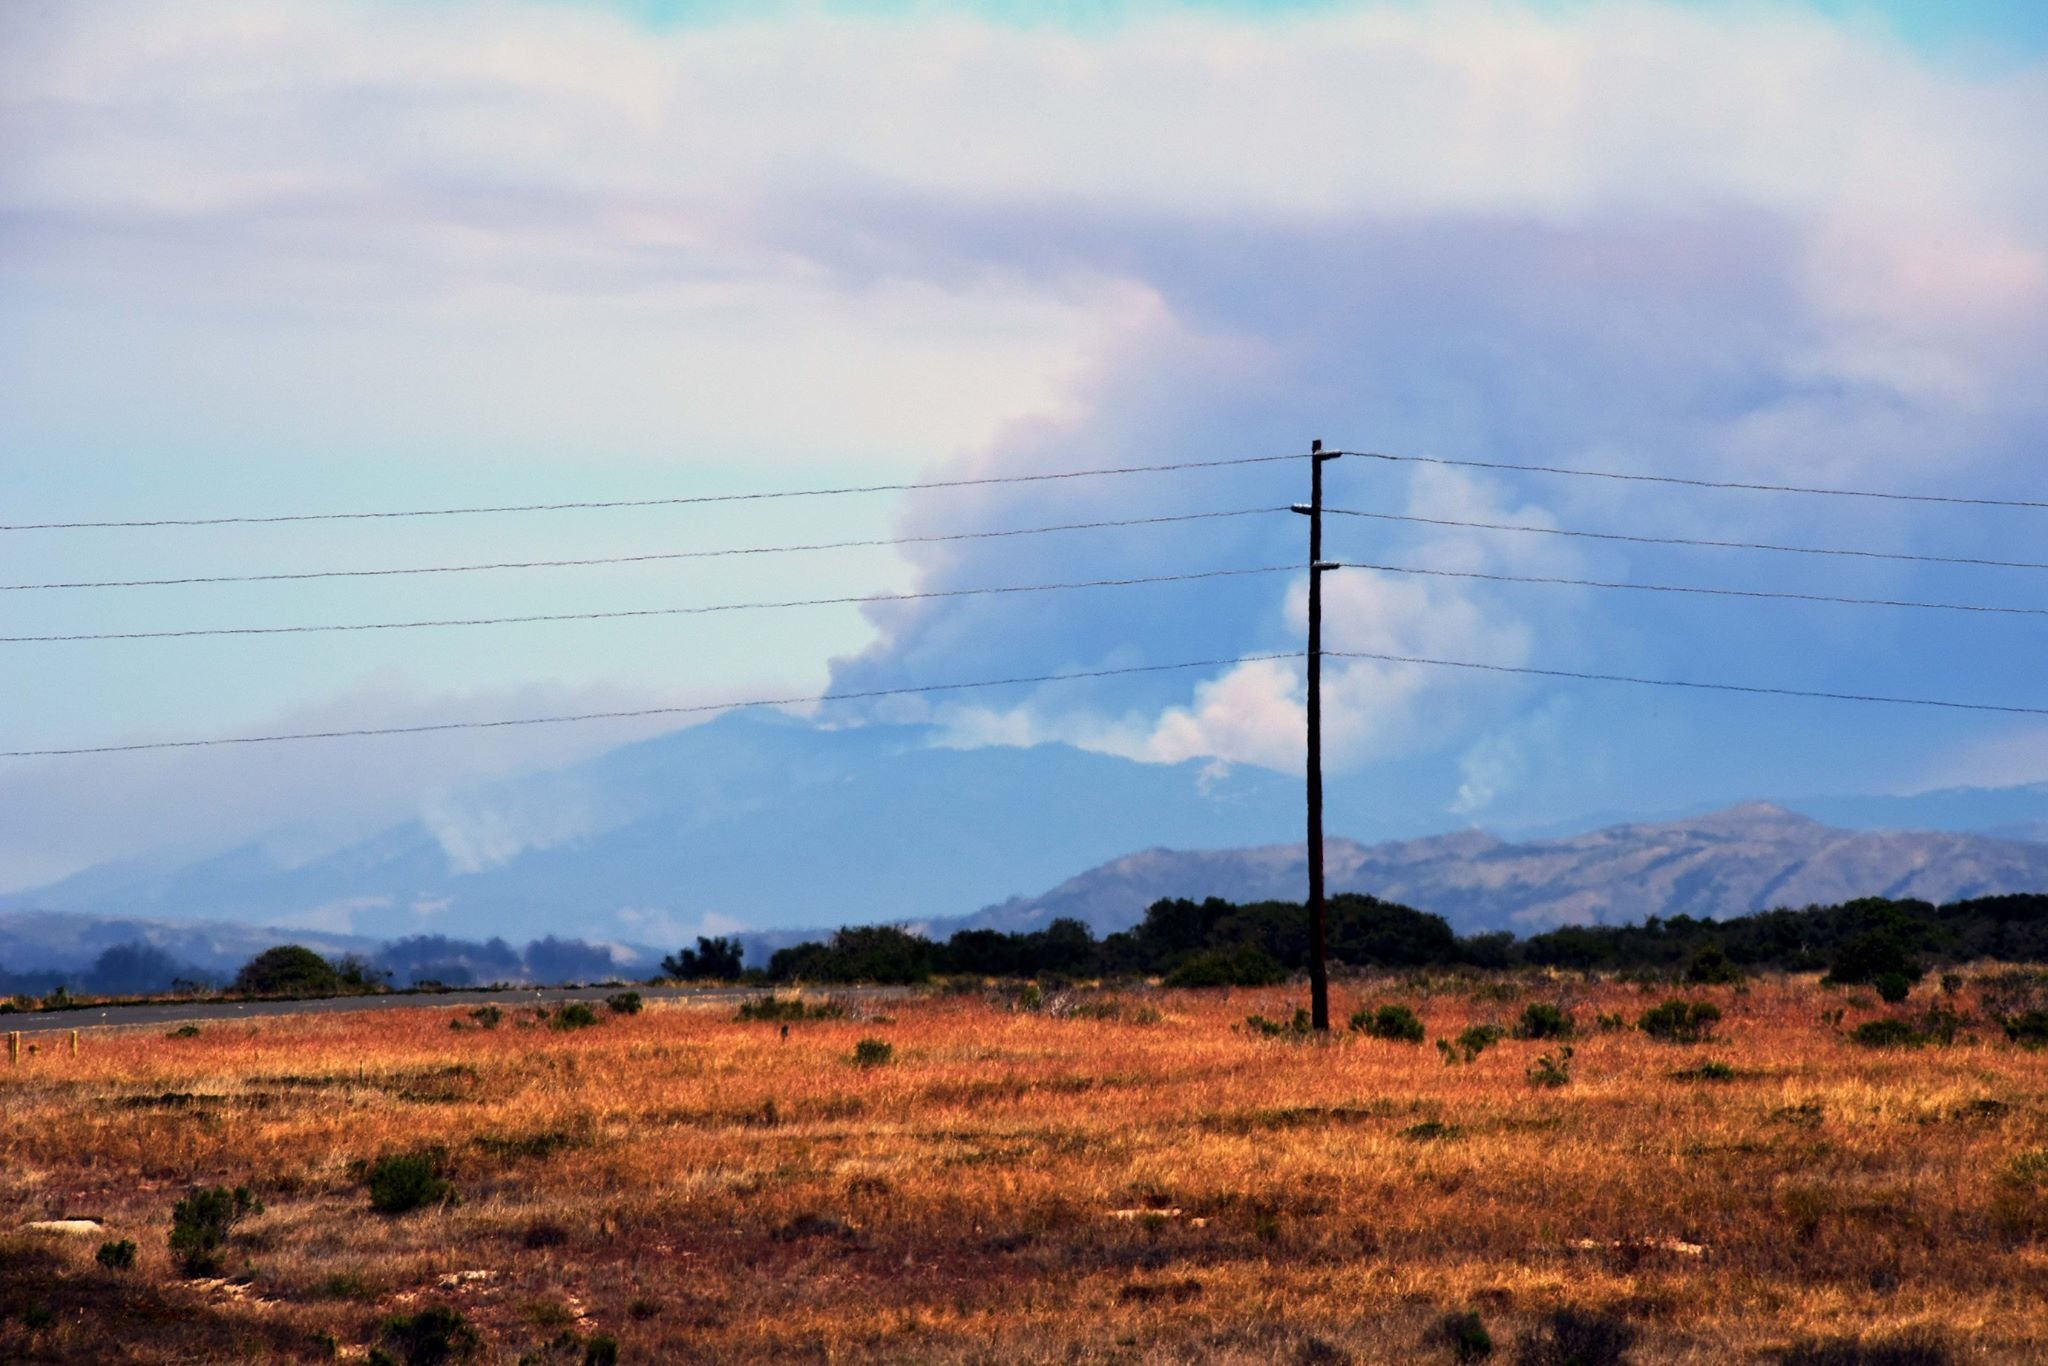 A view of the Whittier fire from Vandenberg AFB. (Credit: Rodney Speed via Facebook)